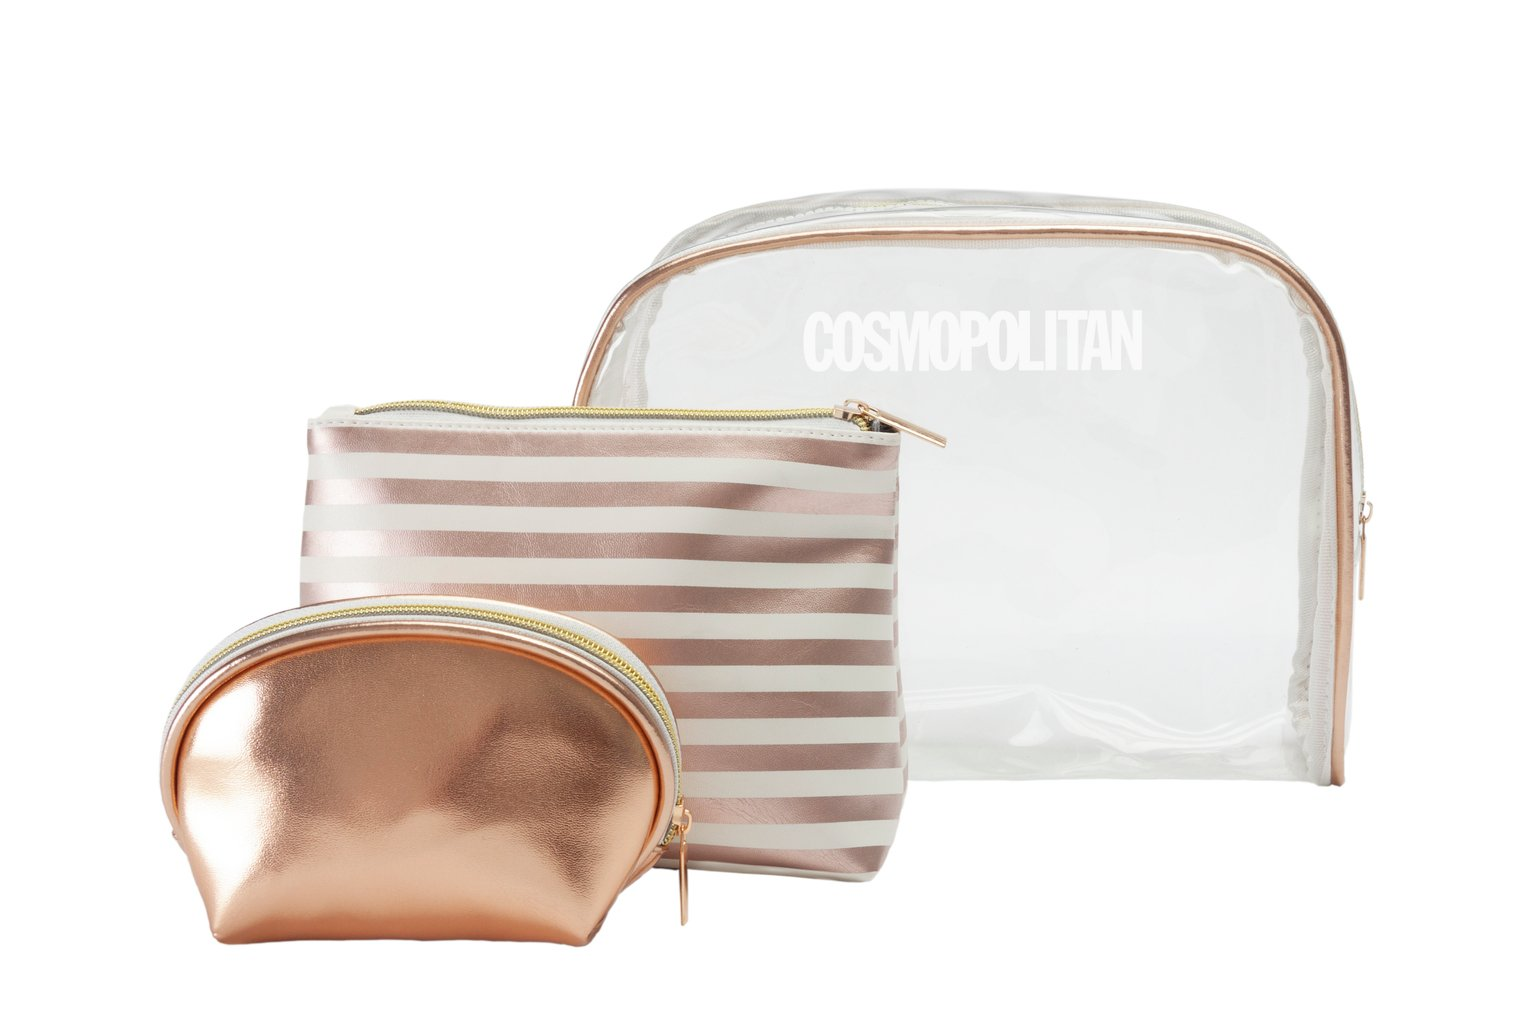 Cosmopolitan Set of 3 Make Up Bags